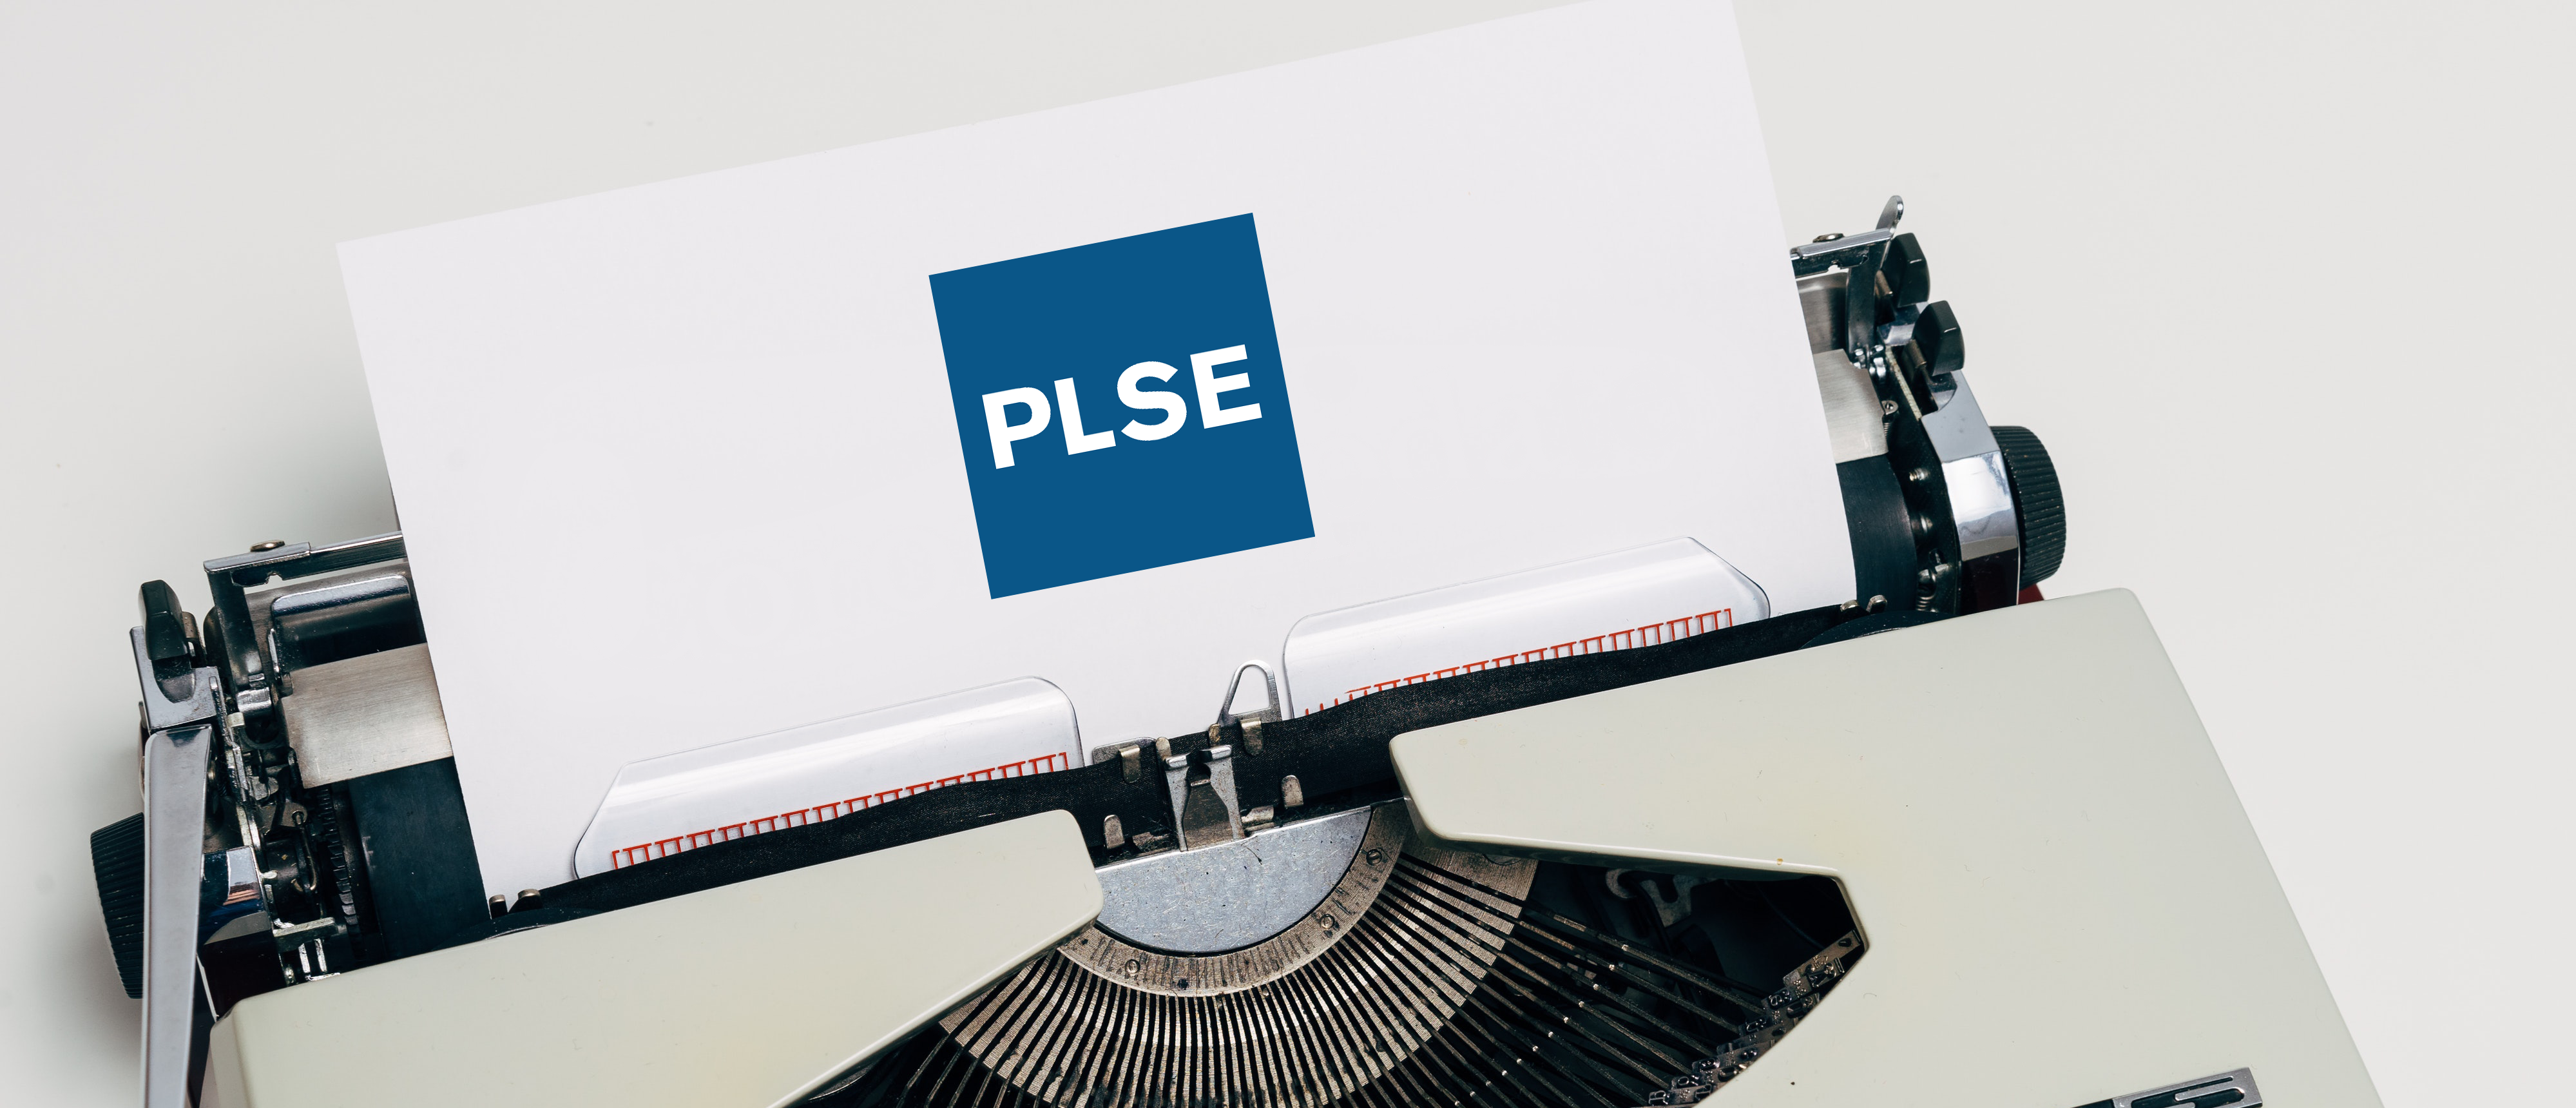 Typewriter with PLSE logo